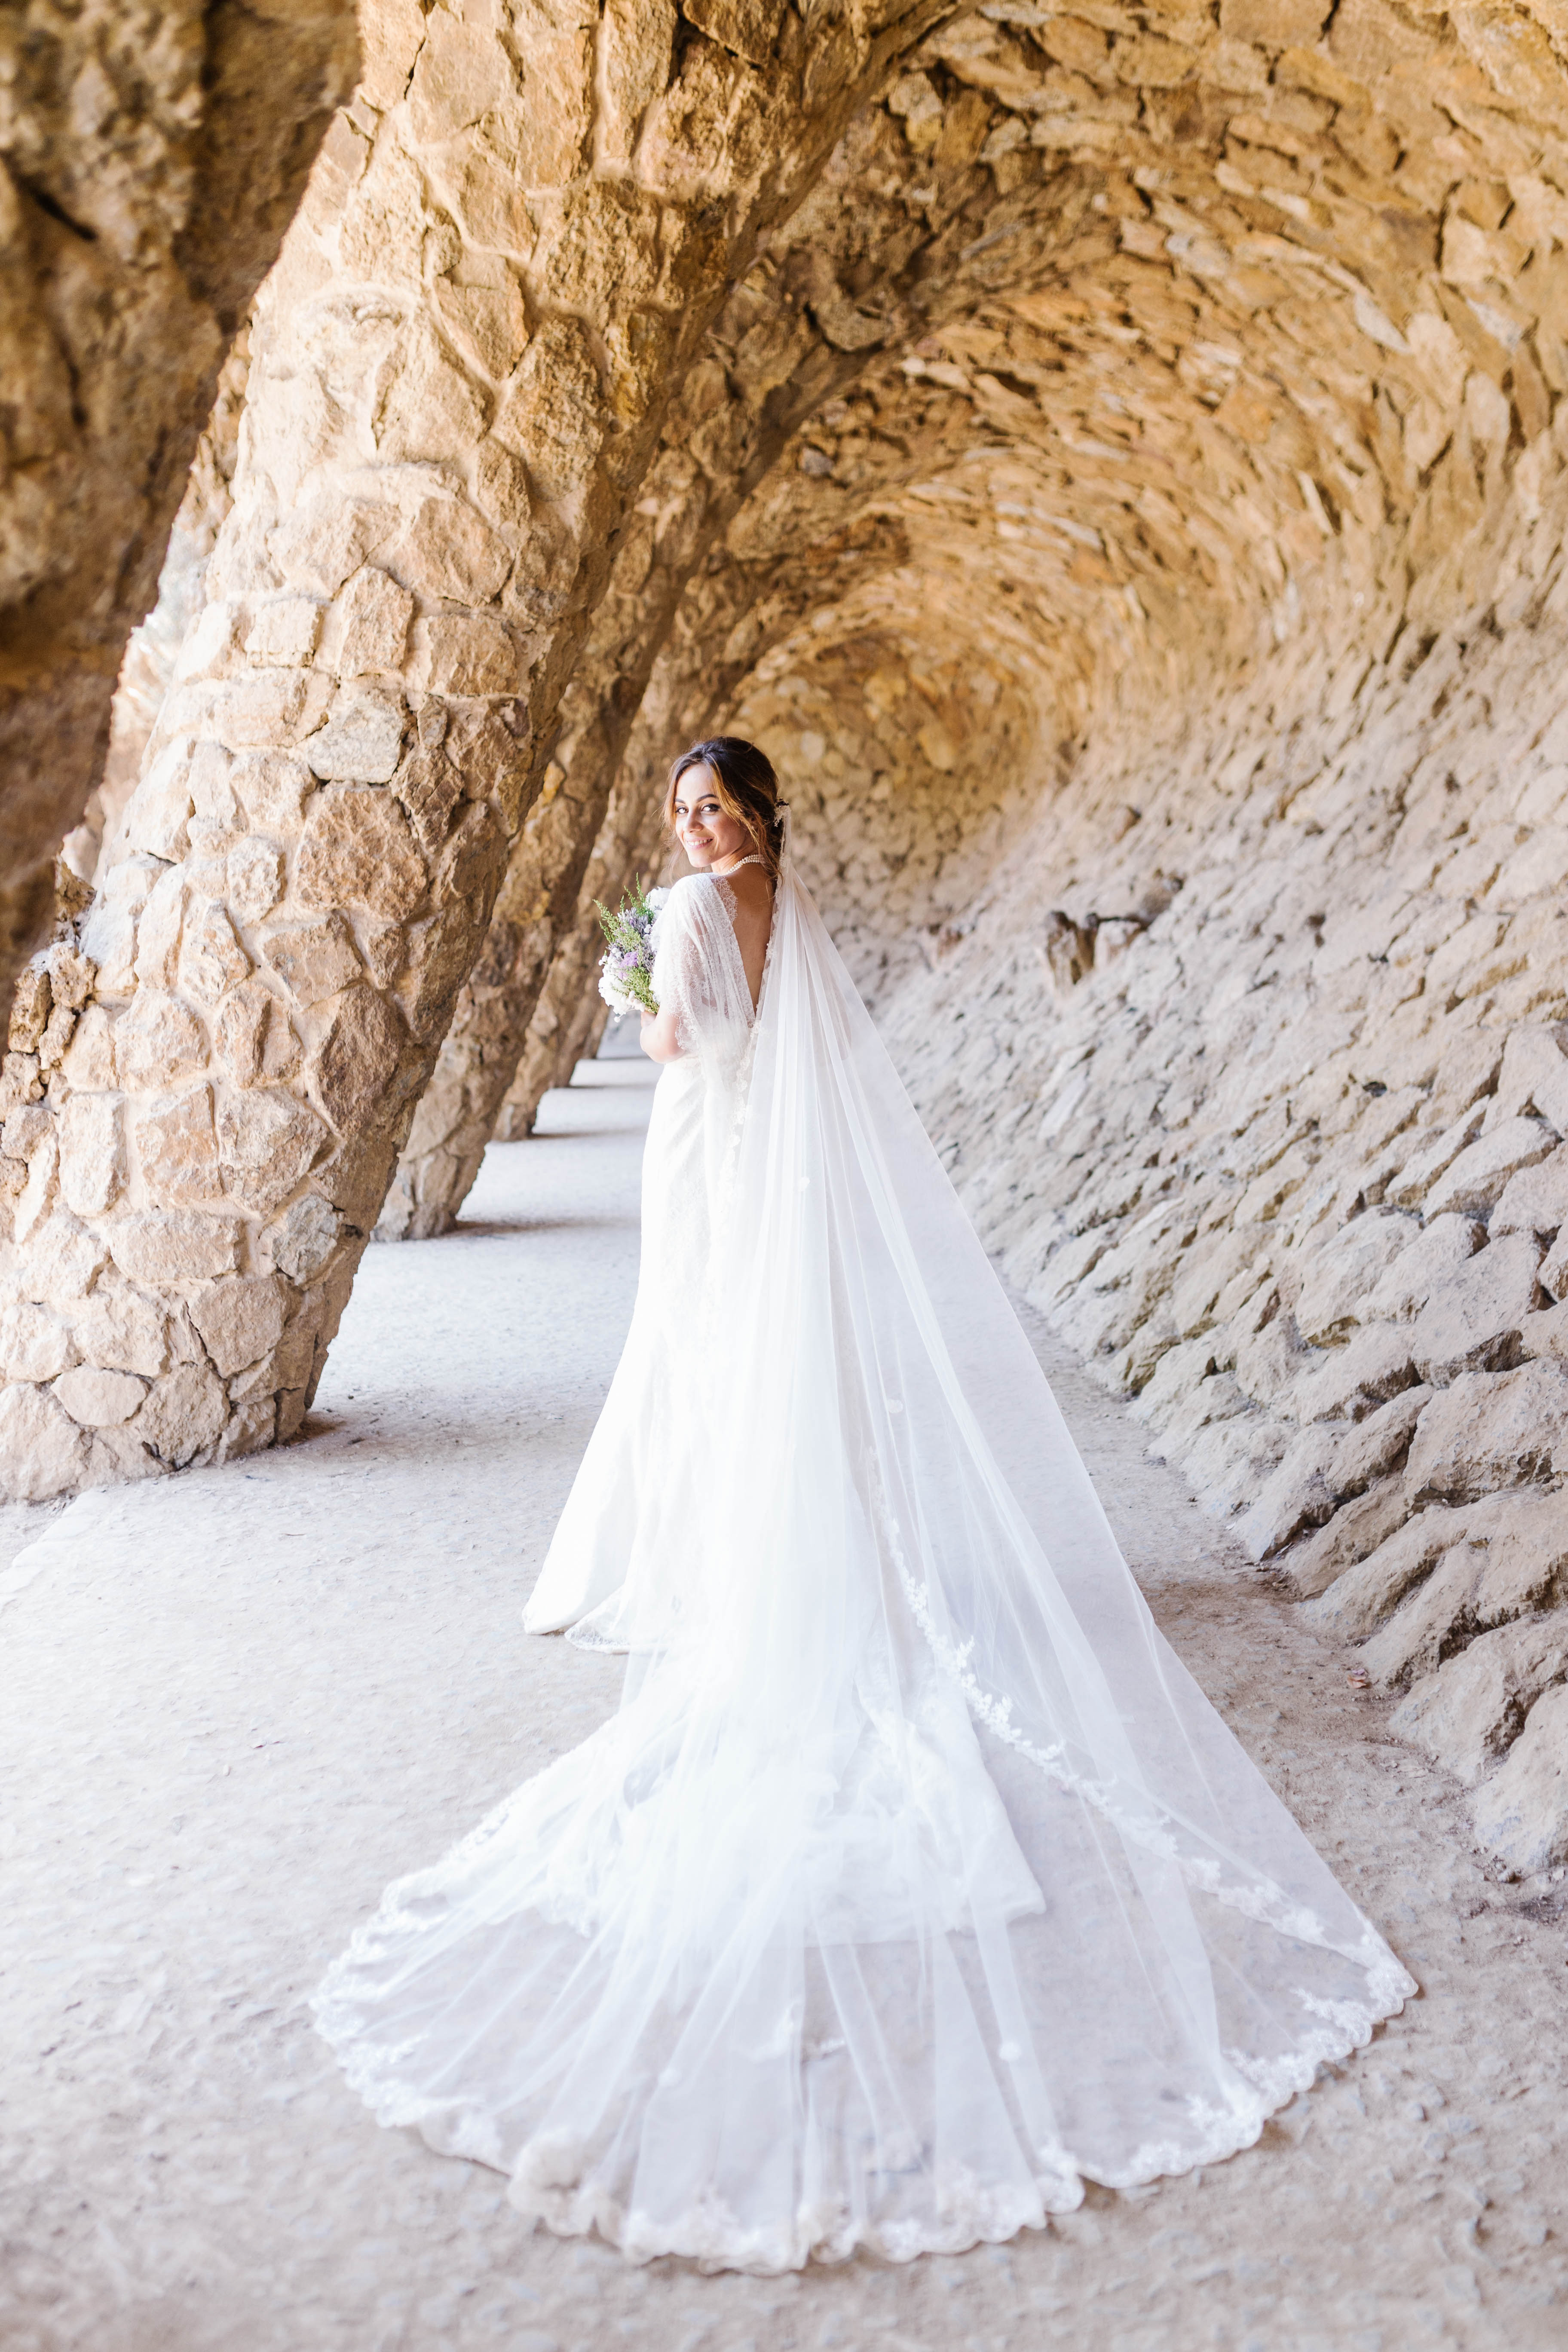 Barcelona wedding photographer | Elopement in Barcelona - Parc Güell| Lena Karelova Photography